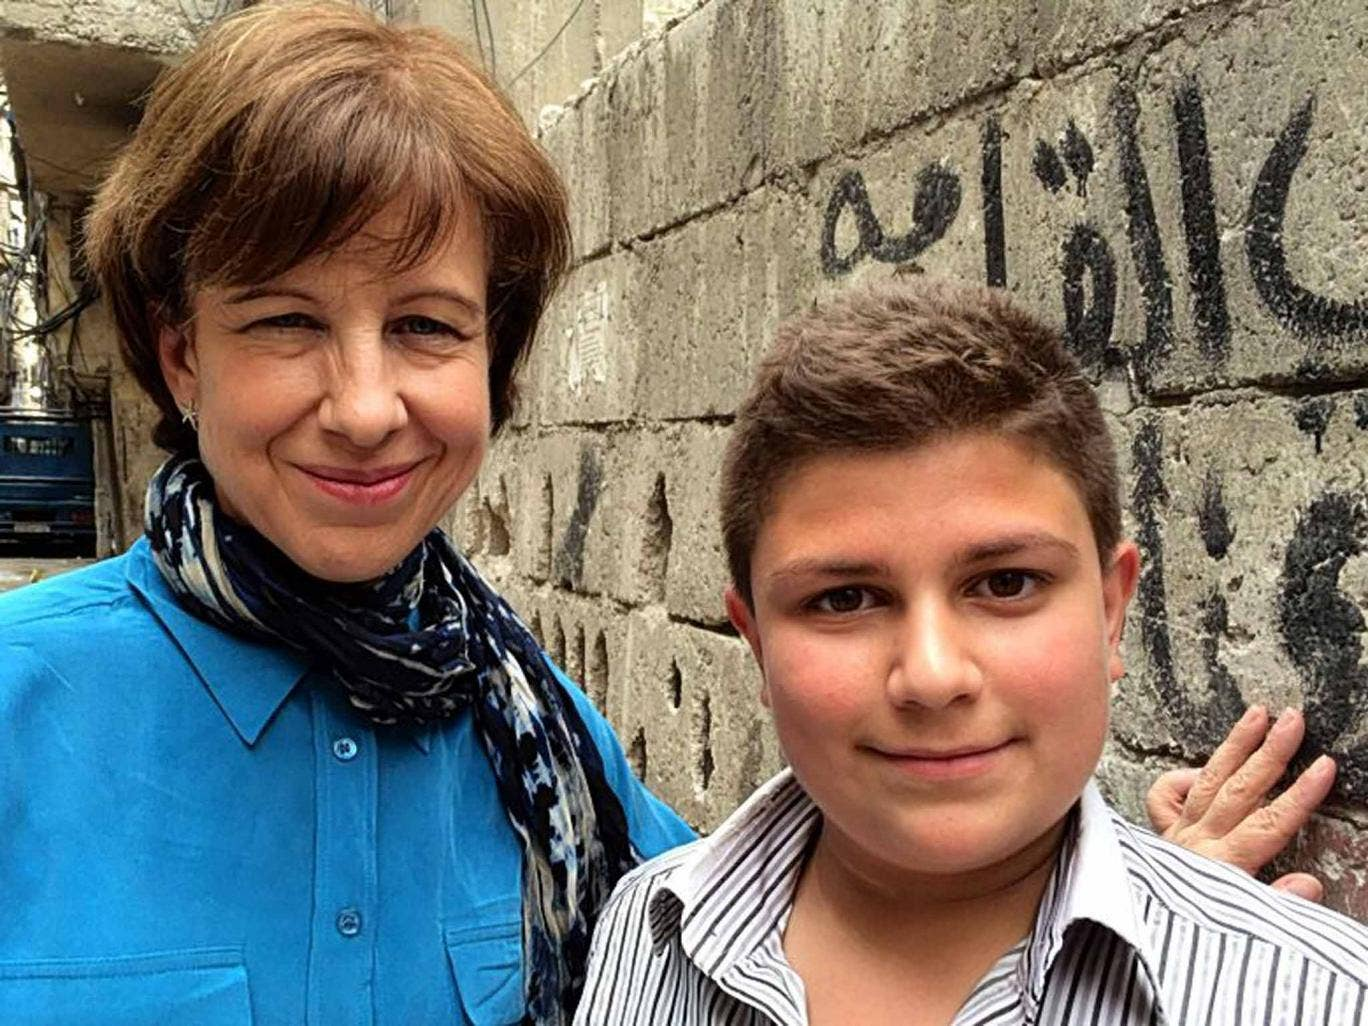 Back to the wall: Lyse Doucet with Jalal in 'Children of Syria'